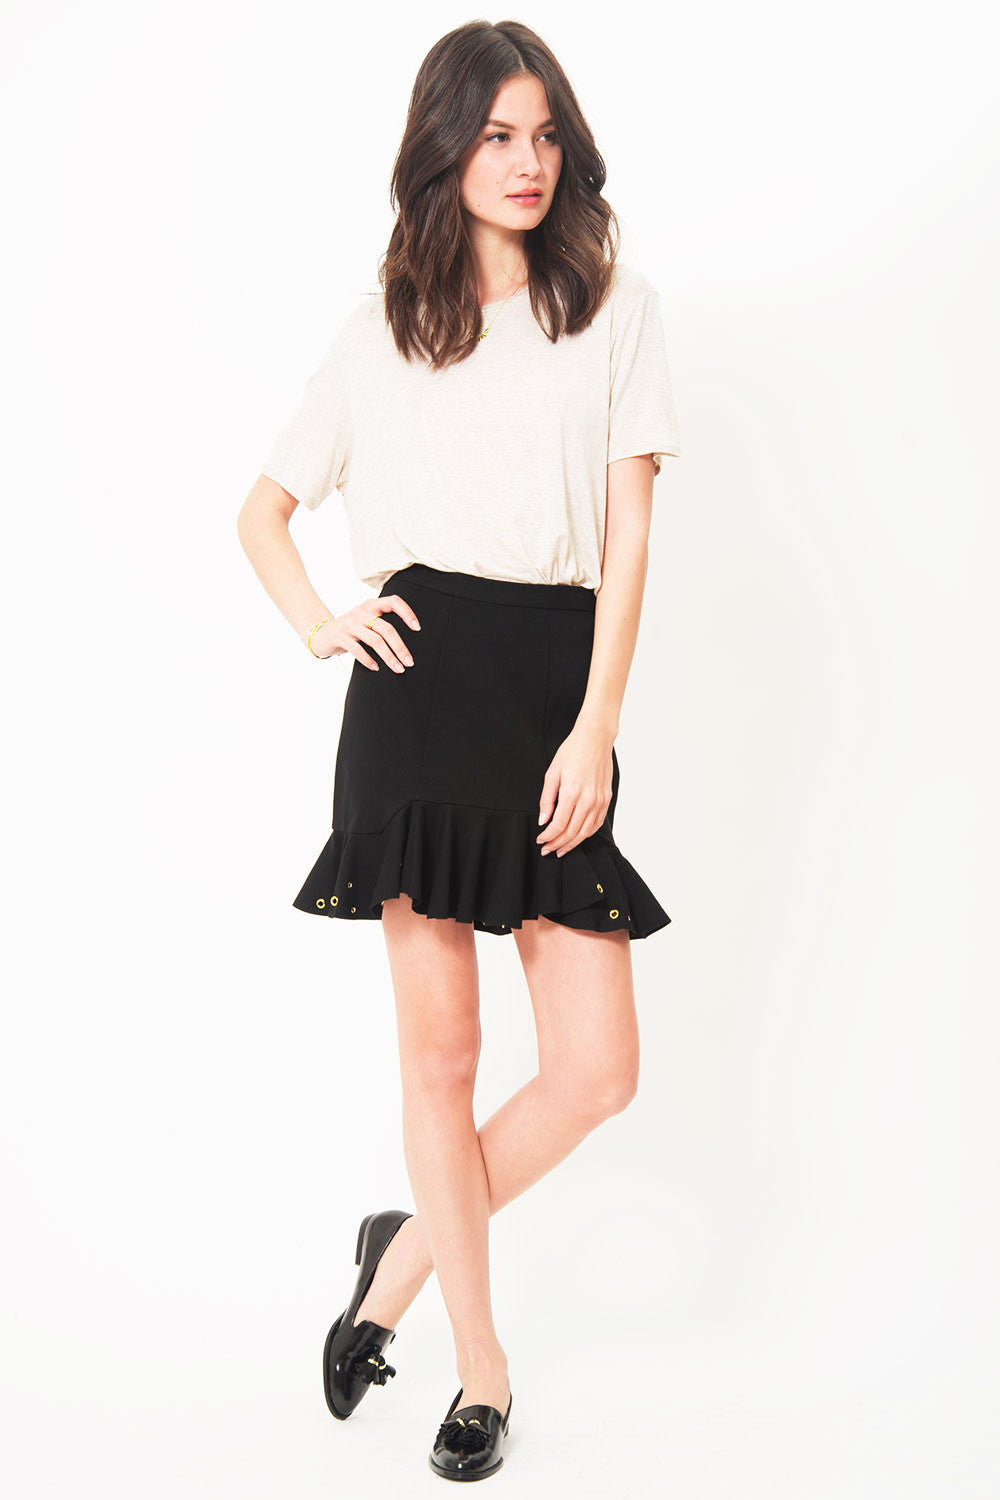 Primary Moet Gold Ponte Skirt // Limited Edition